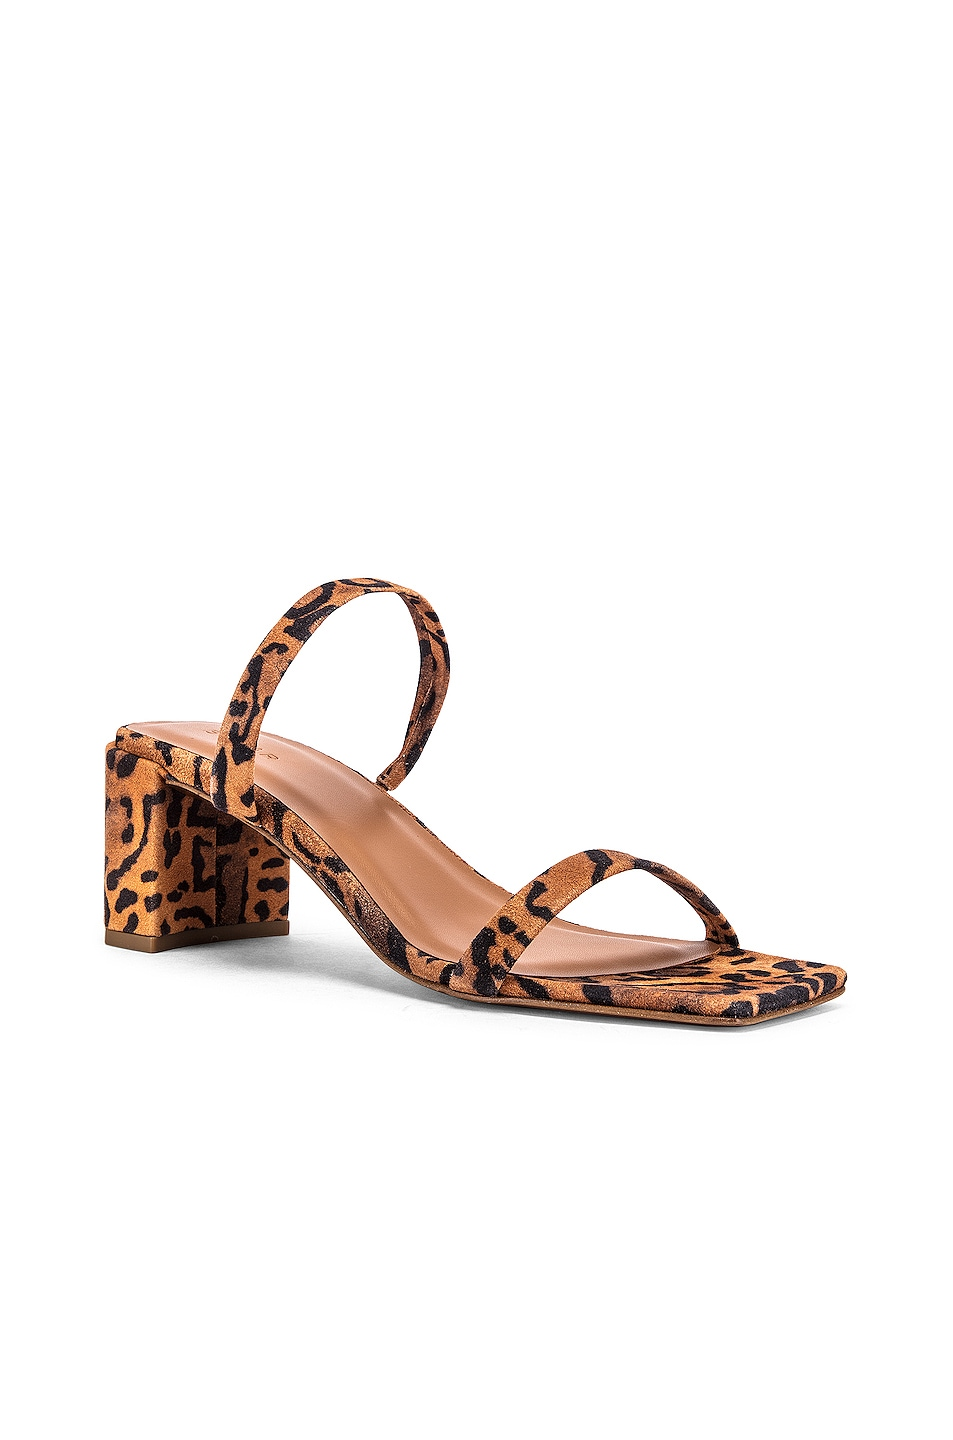 Image 2 of BY FAR Tanya Suede Leather Sandal in Leopard Print